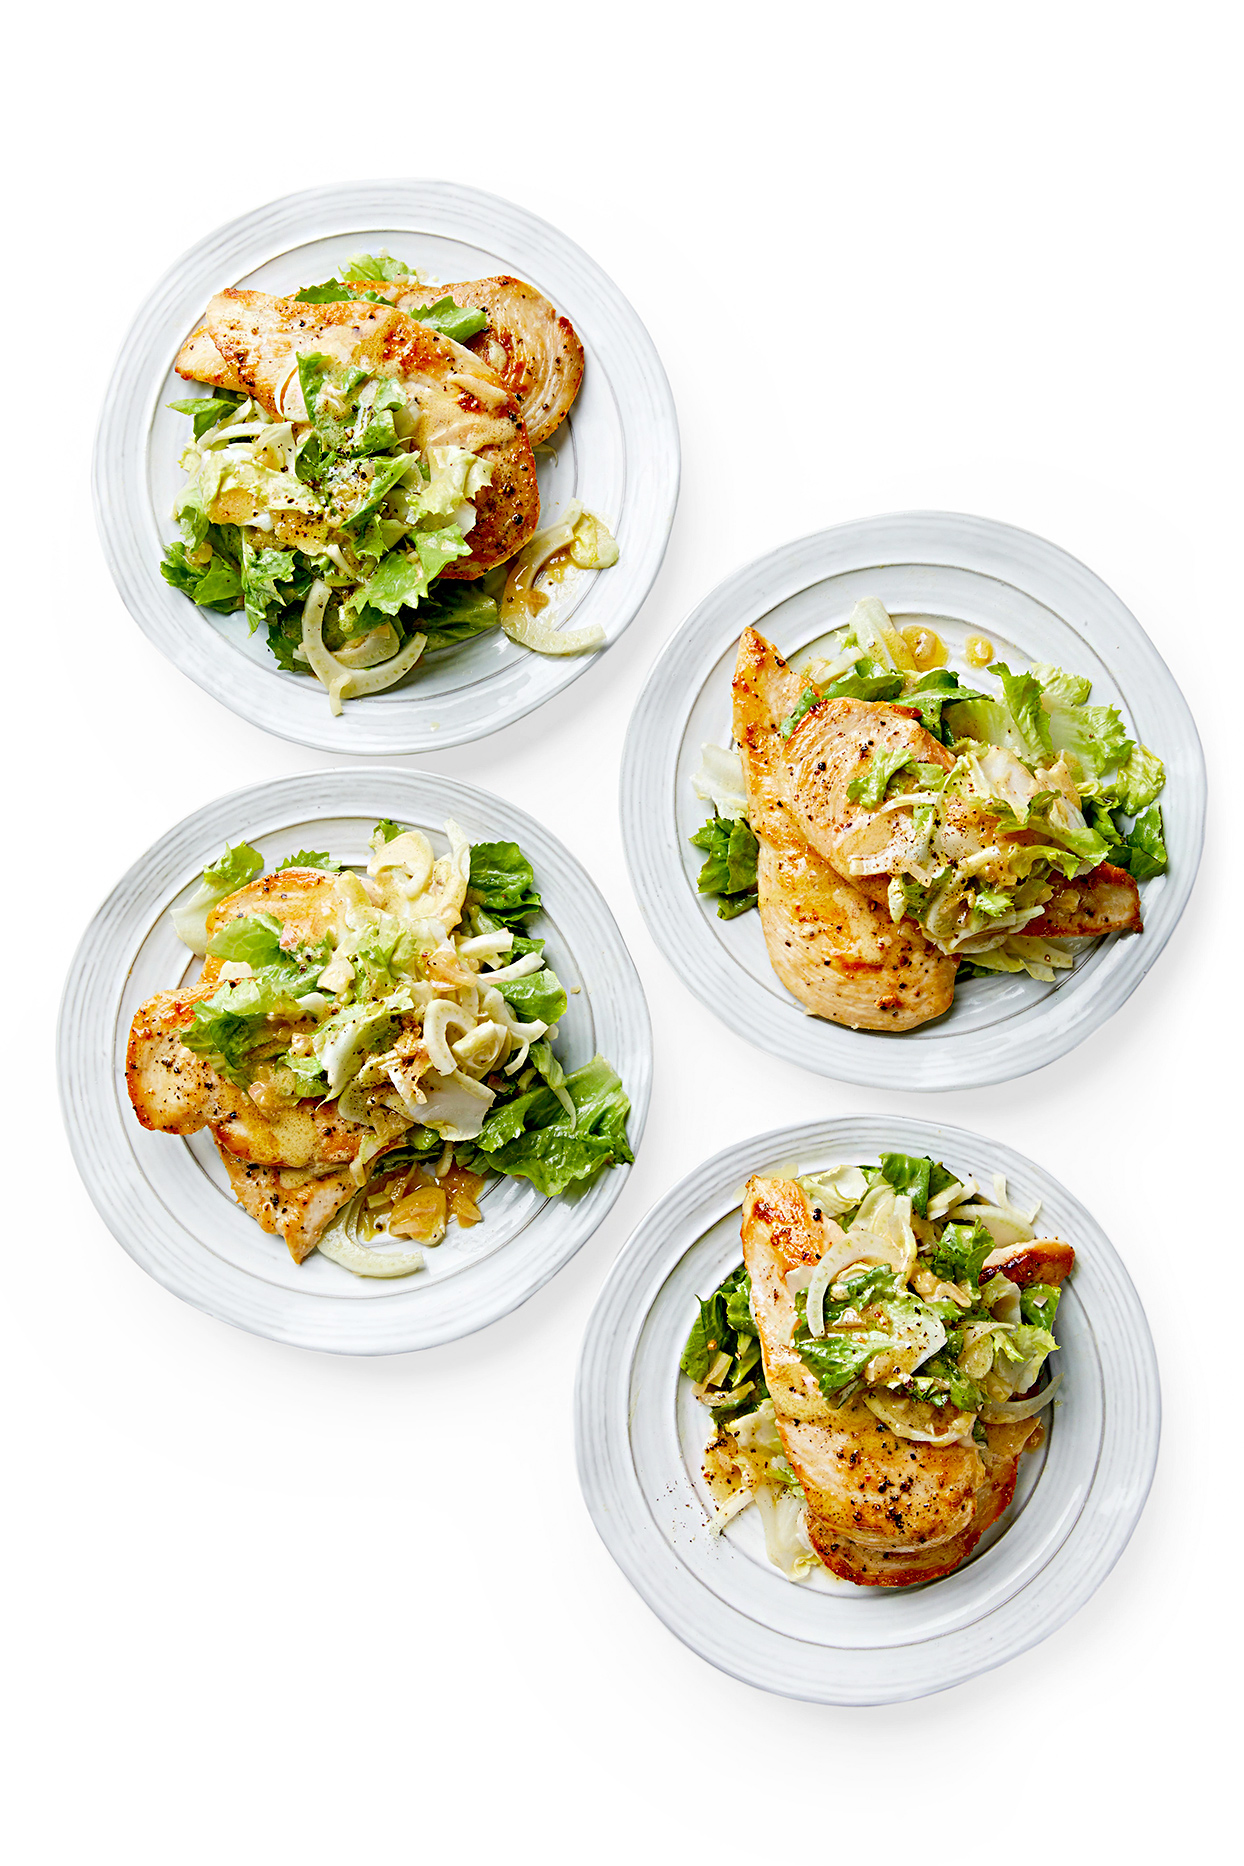 Chicken with Escarole and Warm Mustard Dressing